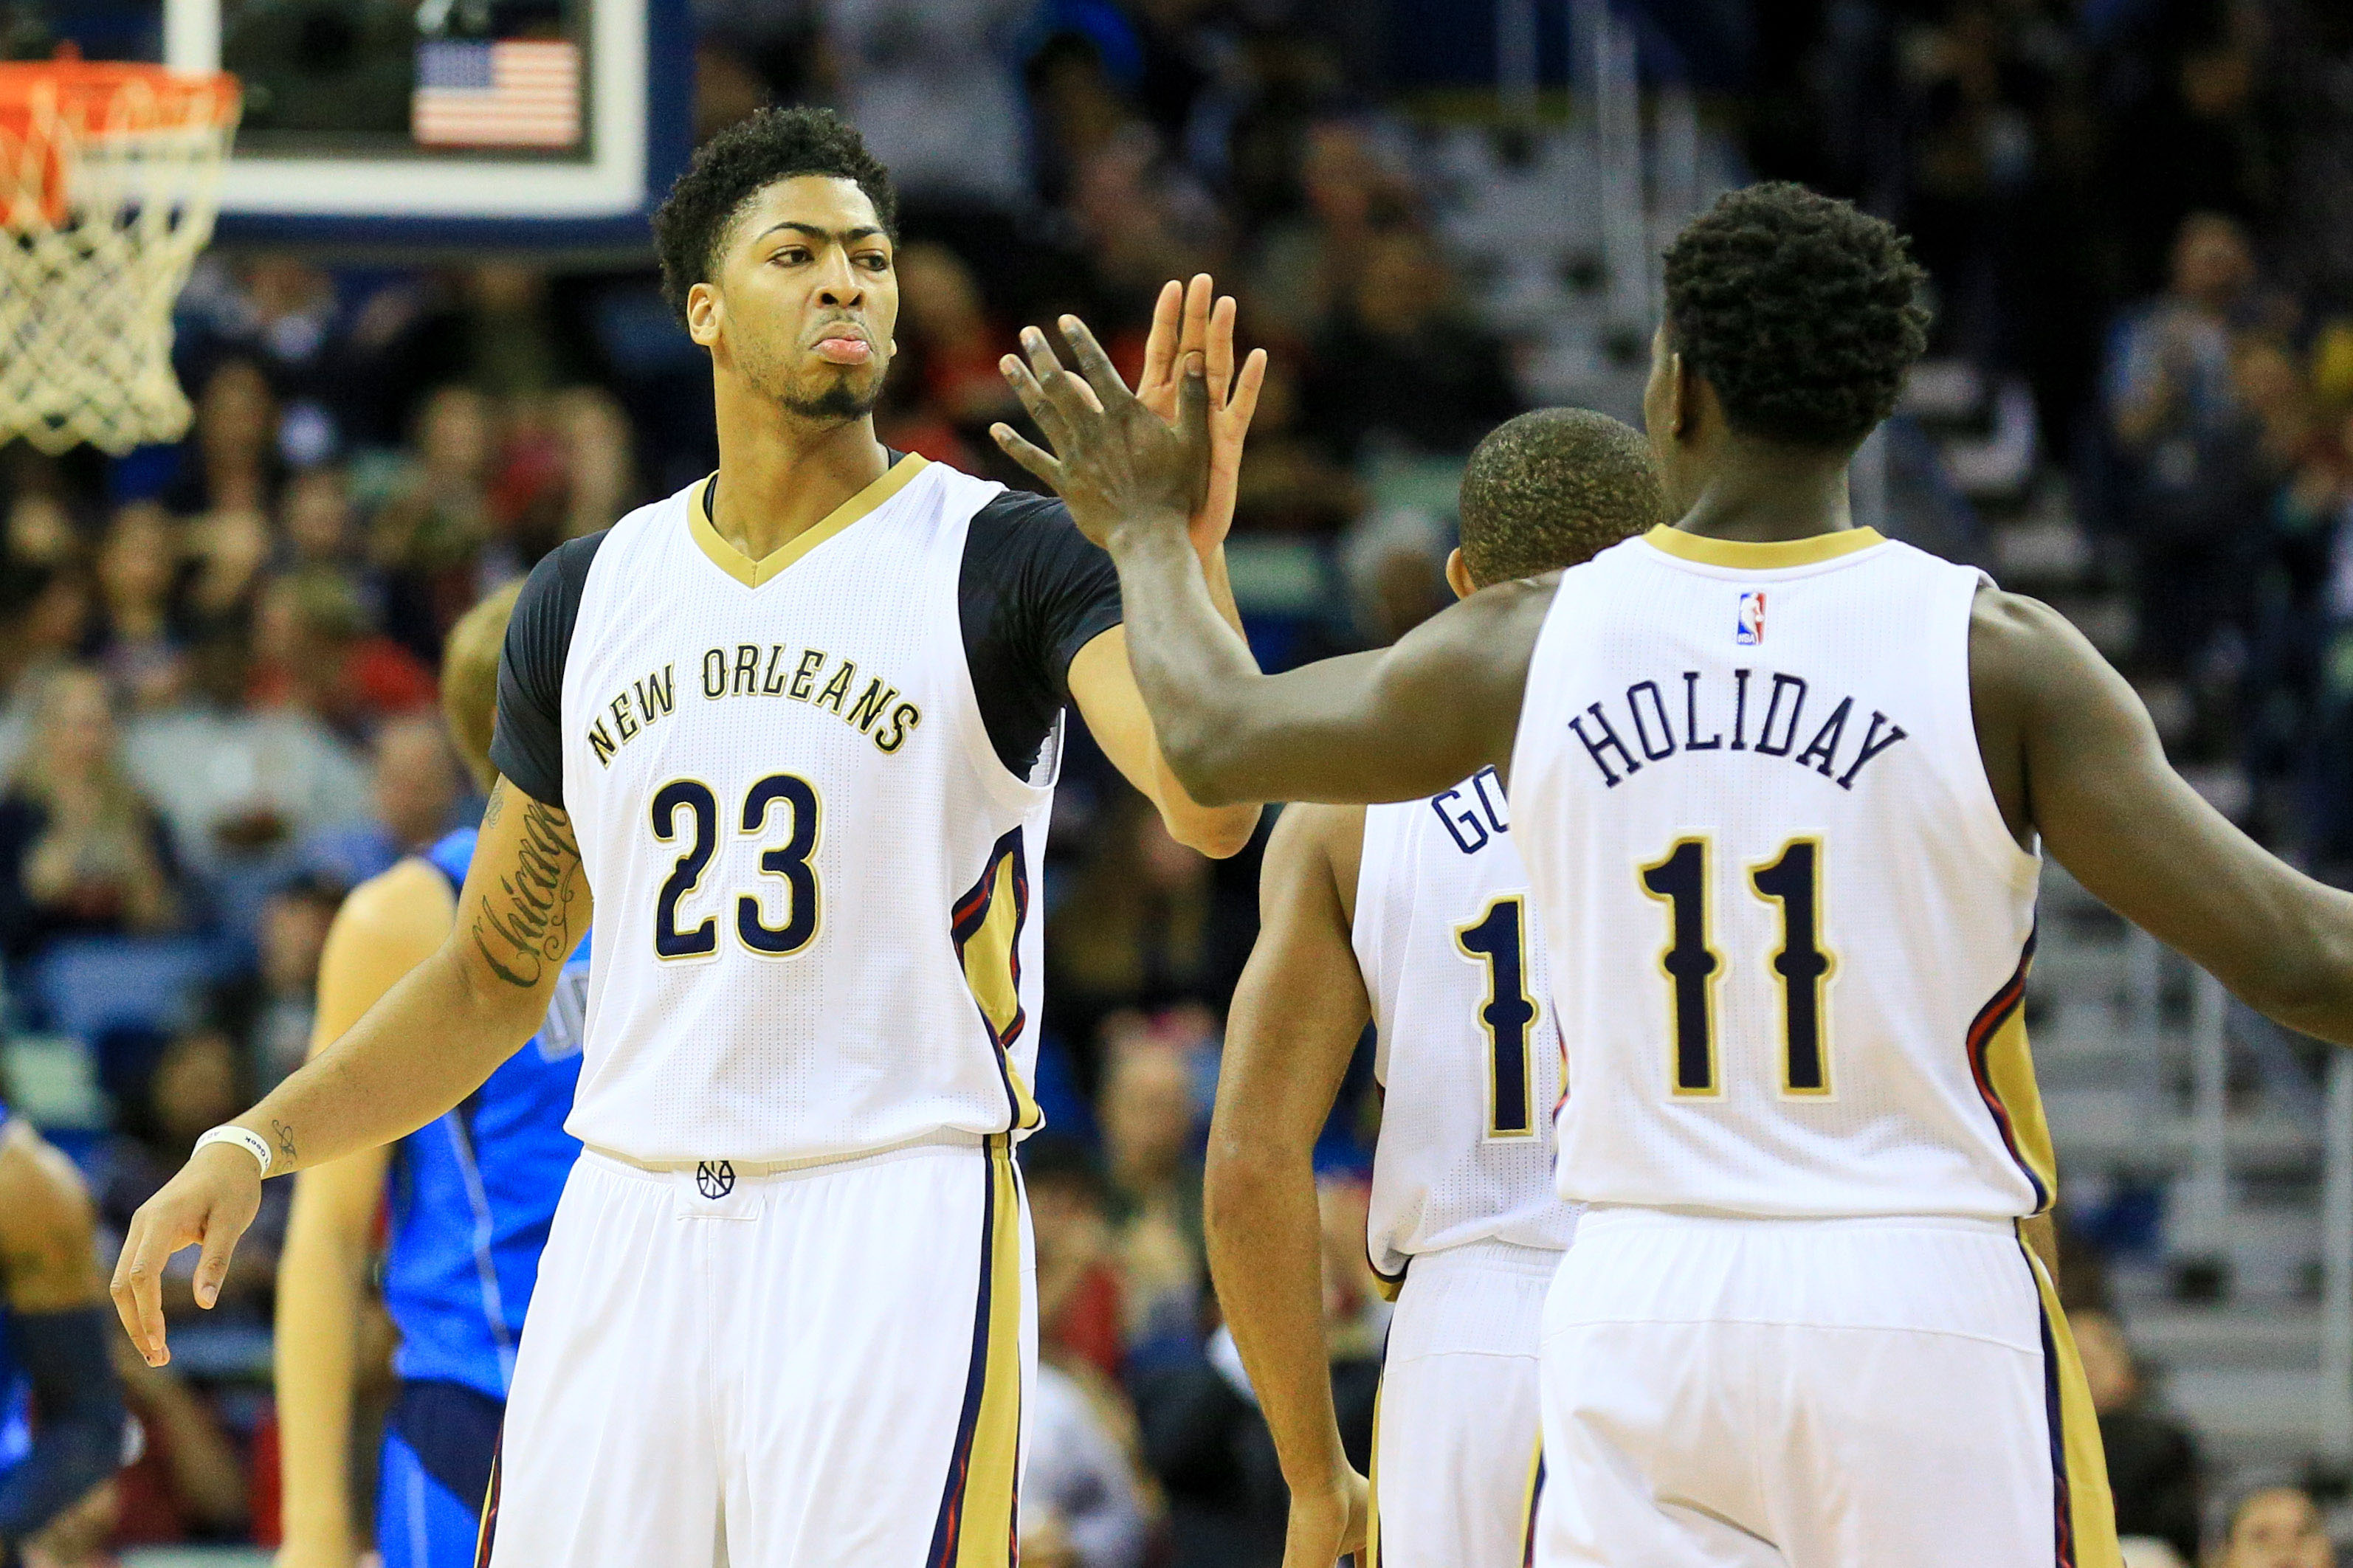 A Complete Season Review Of The 2016 New Orleans Pelicans Roster